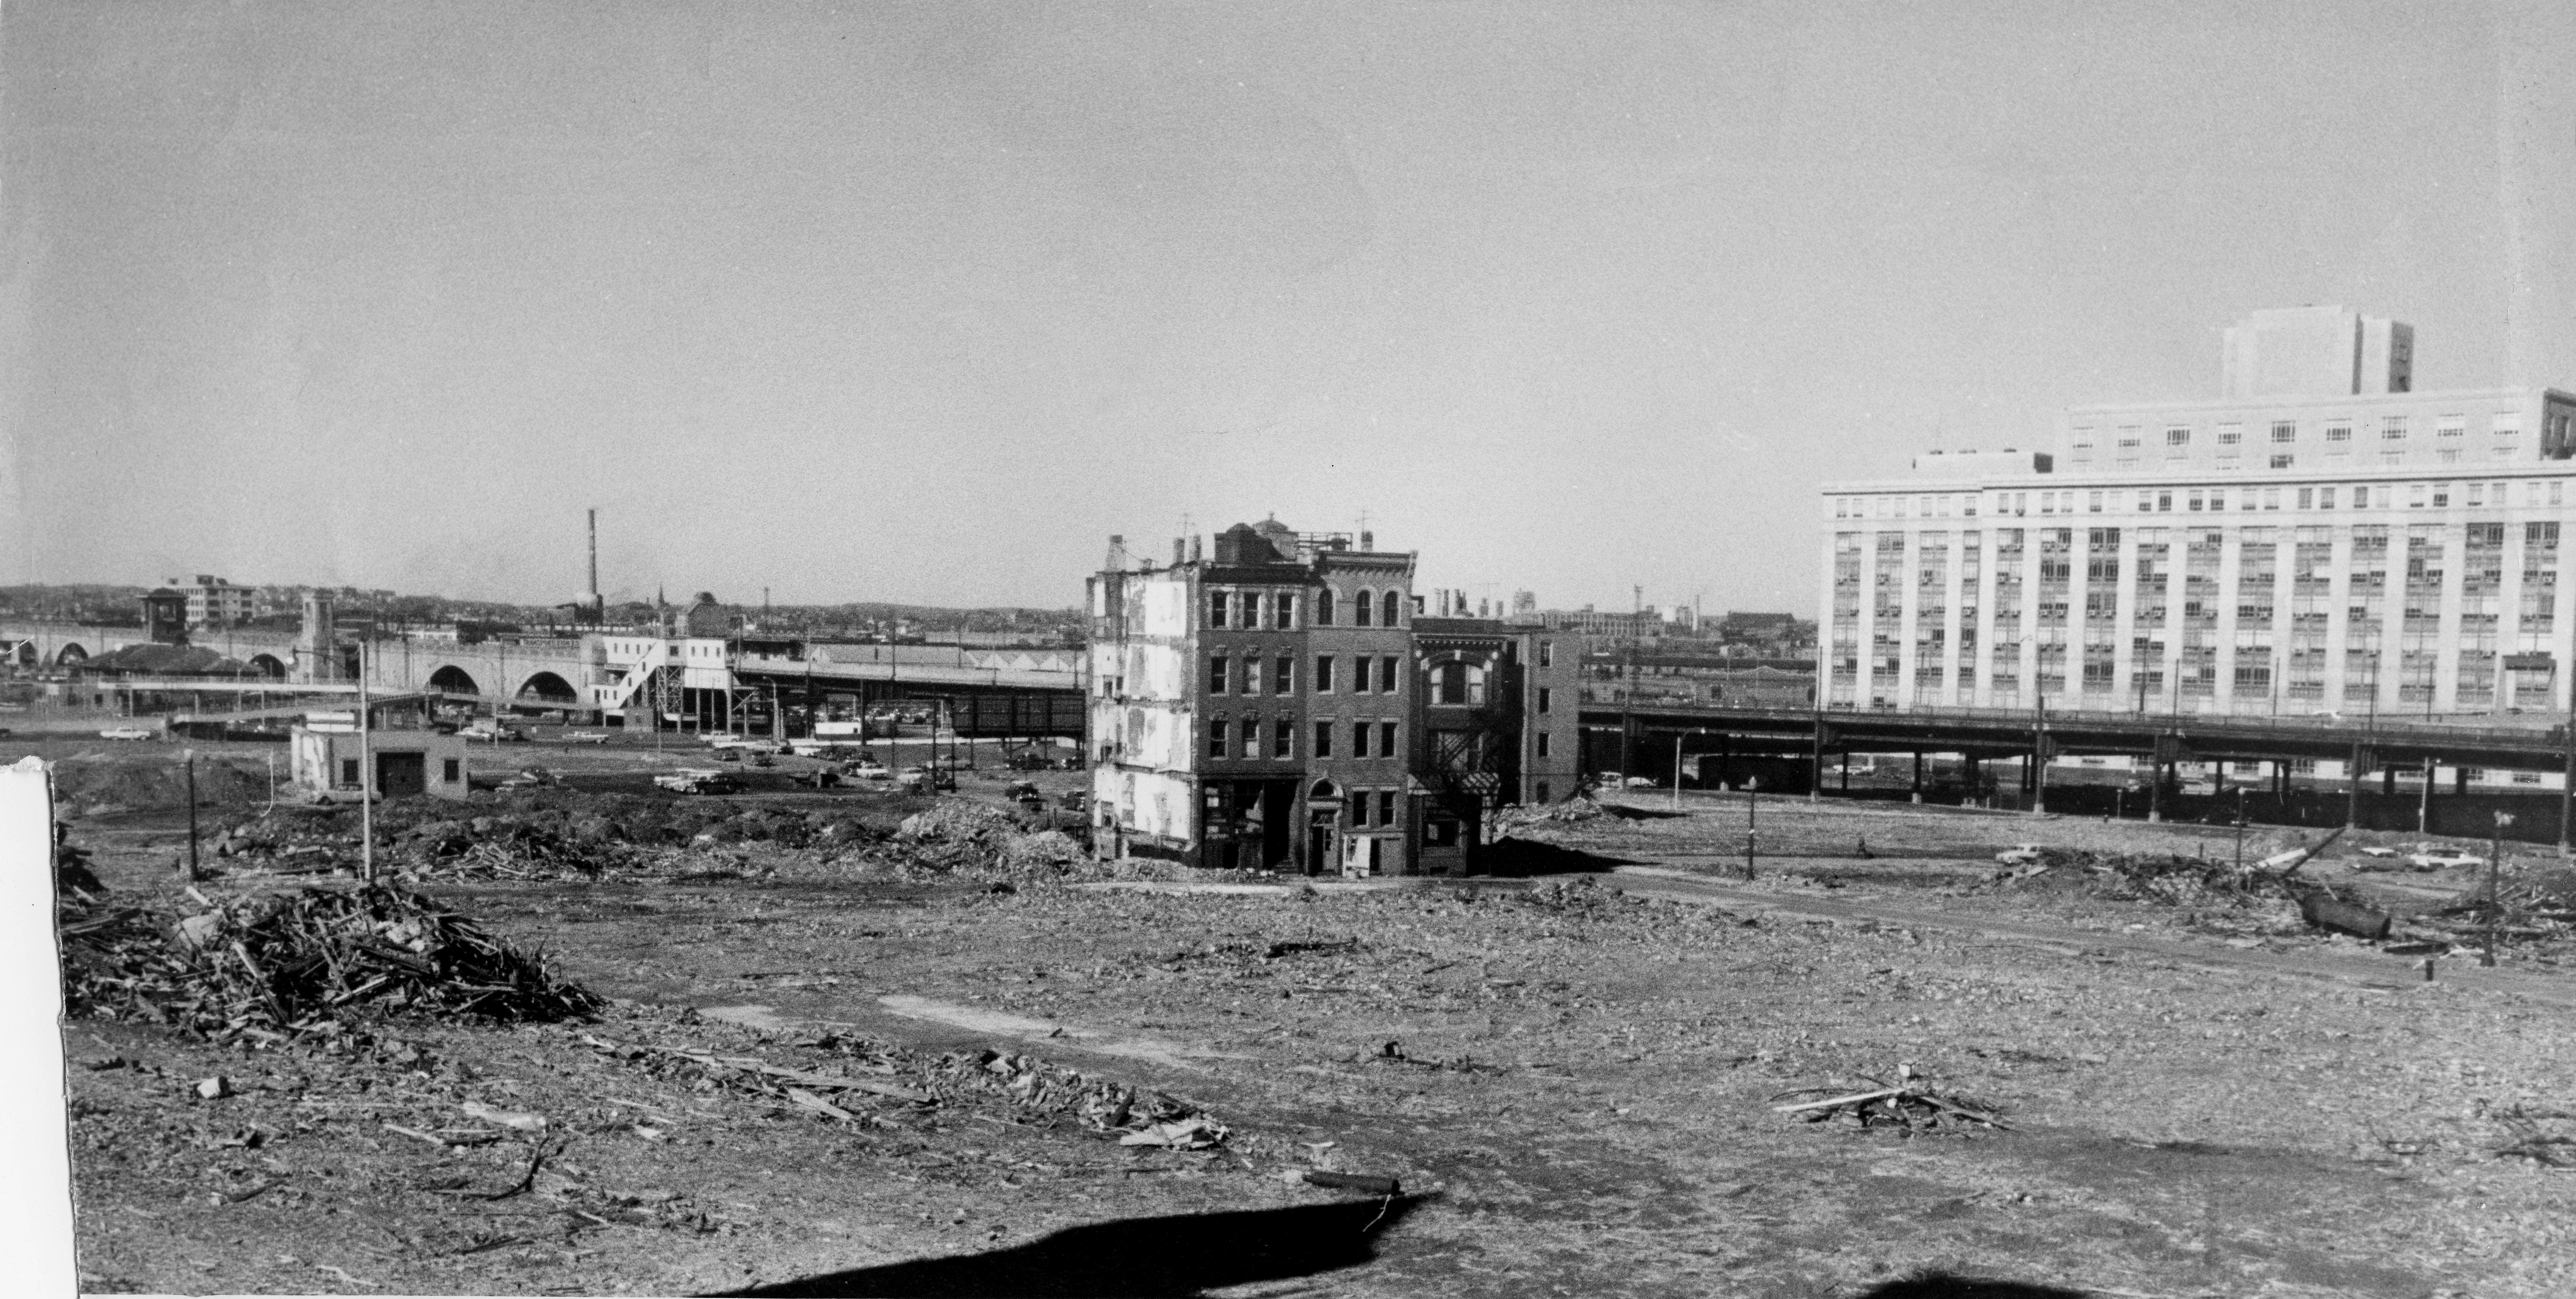 An old photograph of an expansive area of a city that's been flattened except for some solitary buildings.